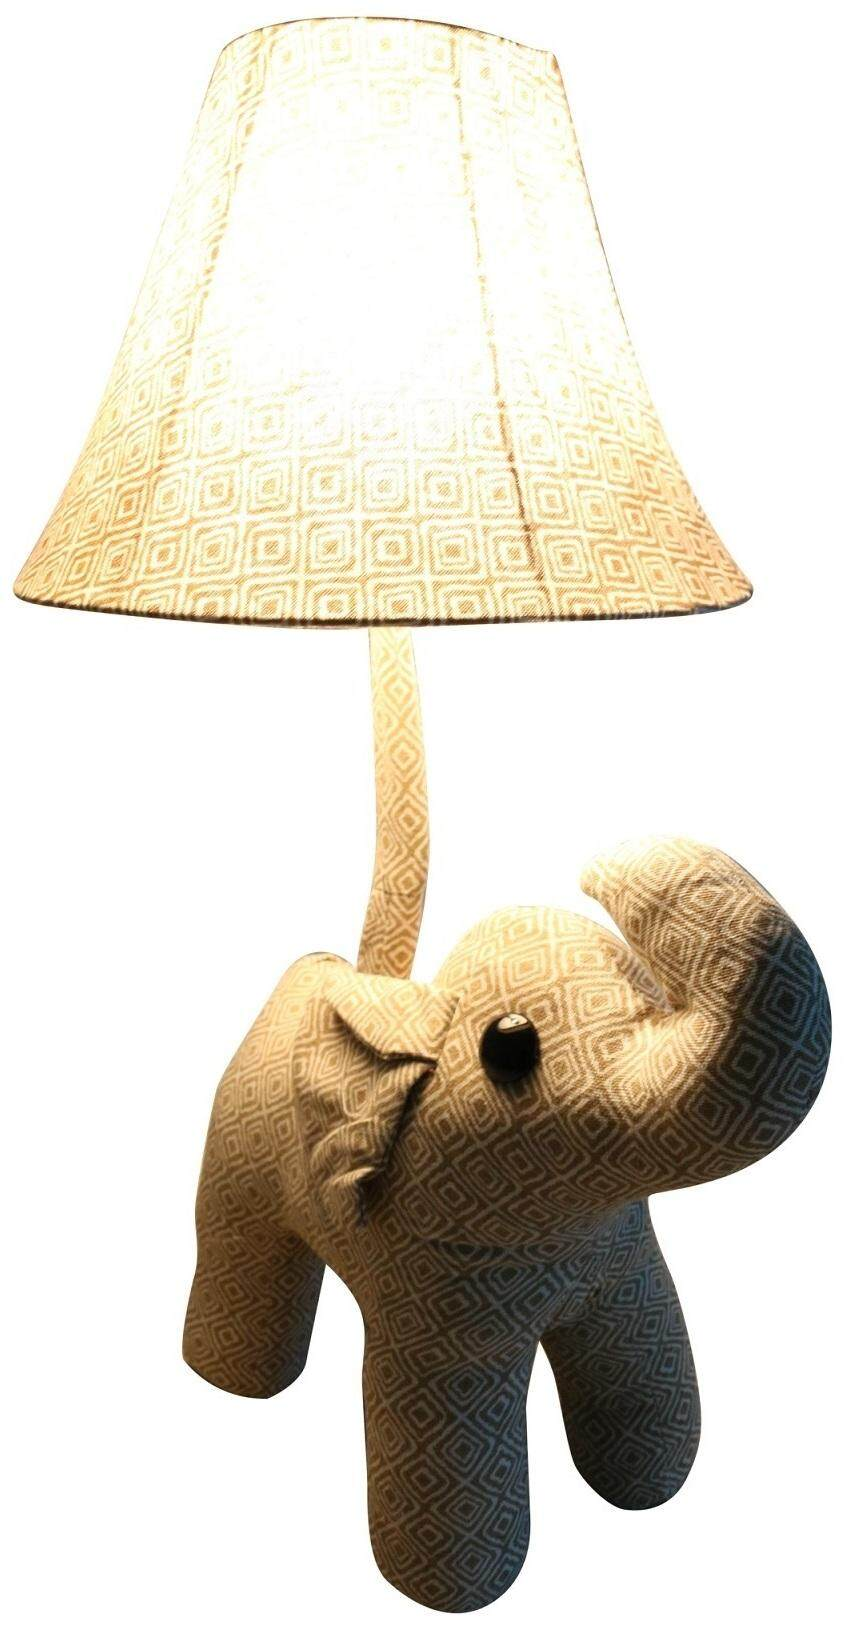 Stuffed Animal Elephant Table Lamp for Kids Safety Children Bedroom Game Room House Decoration (Brown Version, E27 Light Bulb Compatible, 40W)